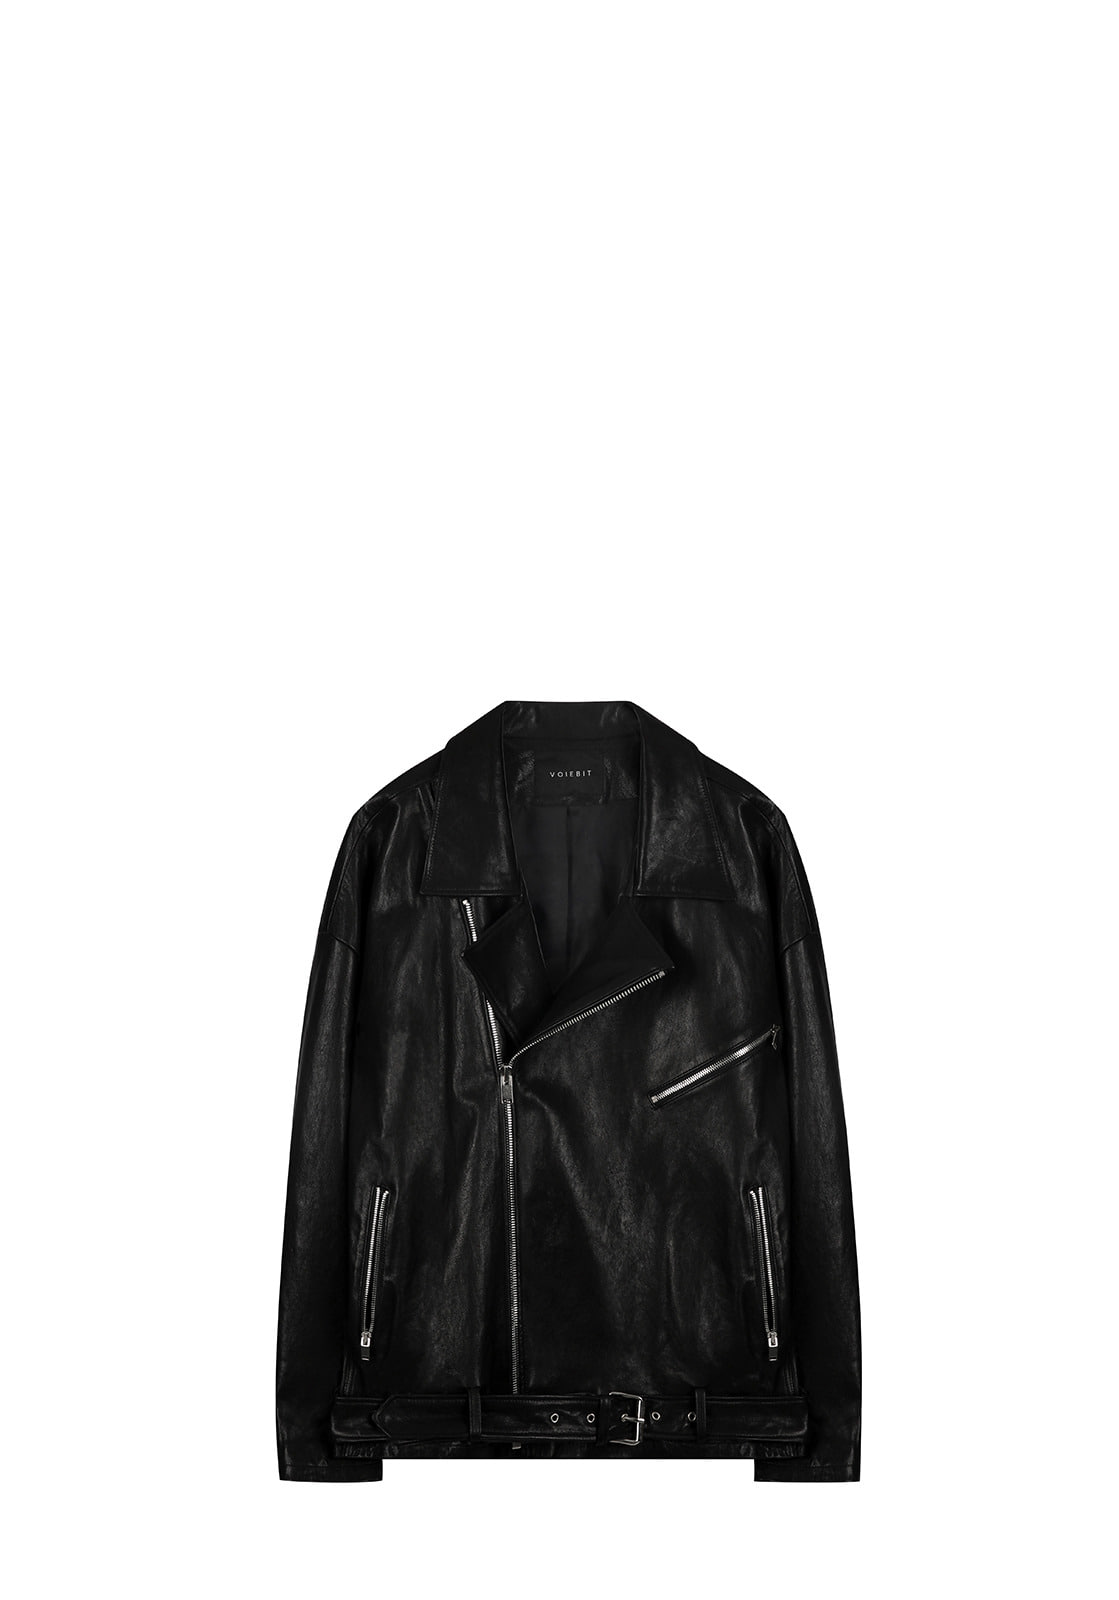 OVERSIZE ZIPPER LEATHER JACKETBLACK